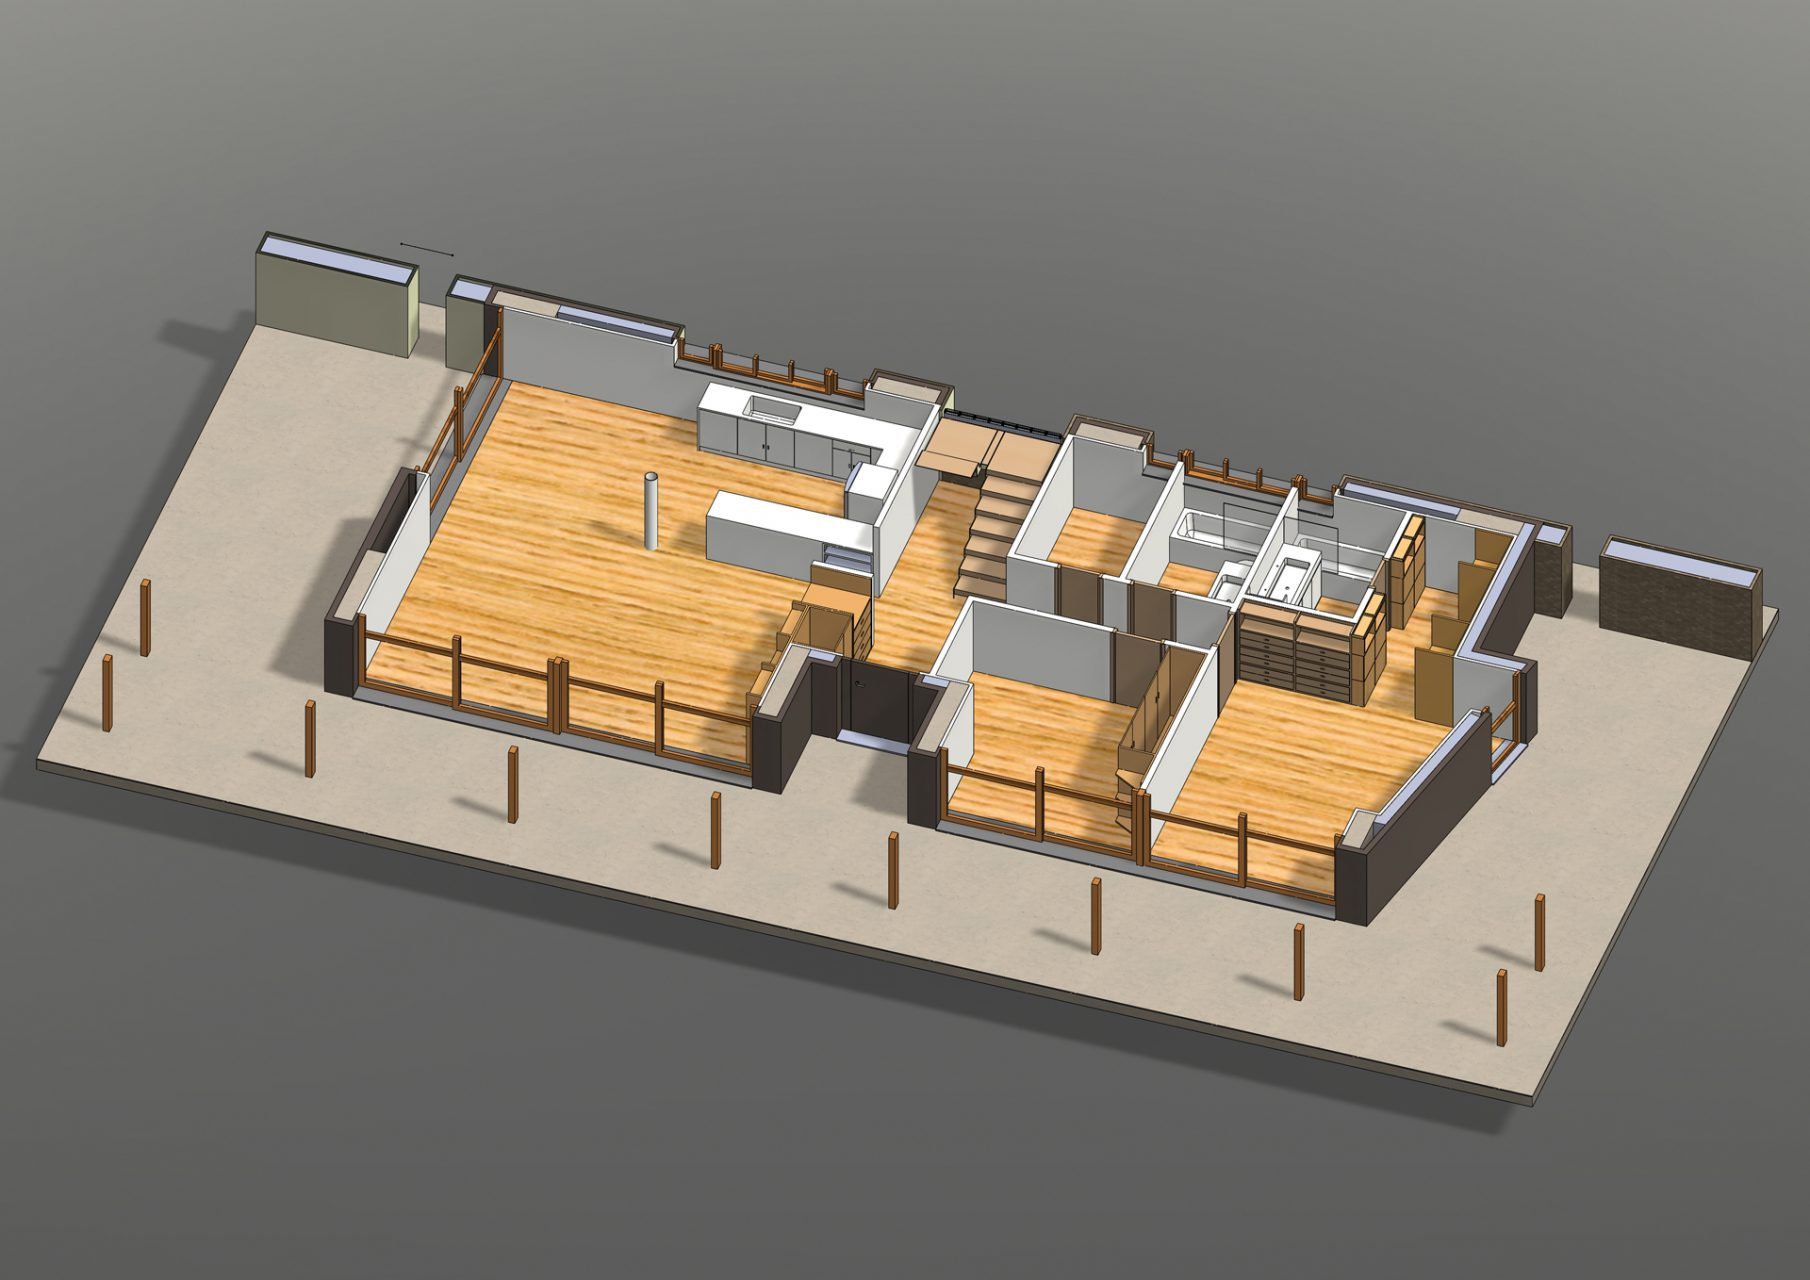 KL HOUSE 05 - axonometric plan in horizontally sectioned model F